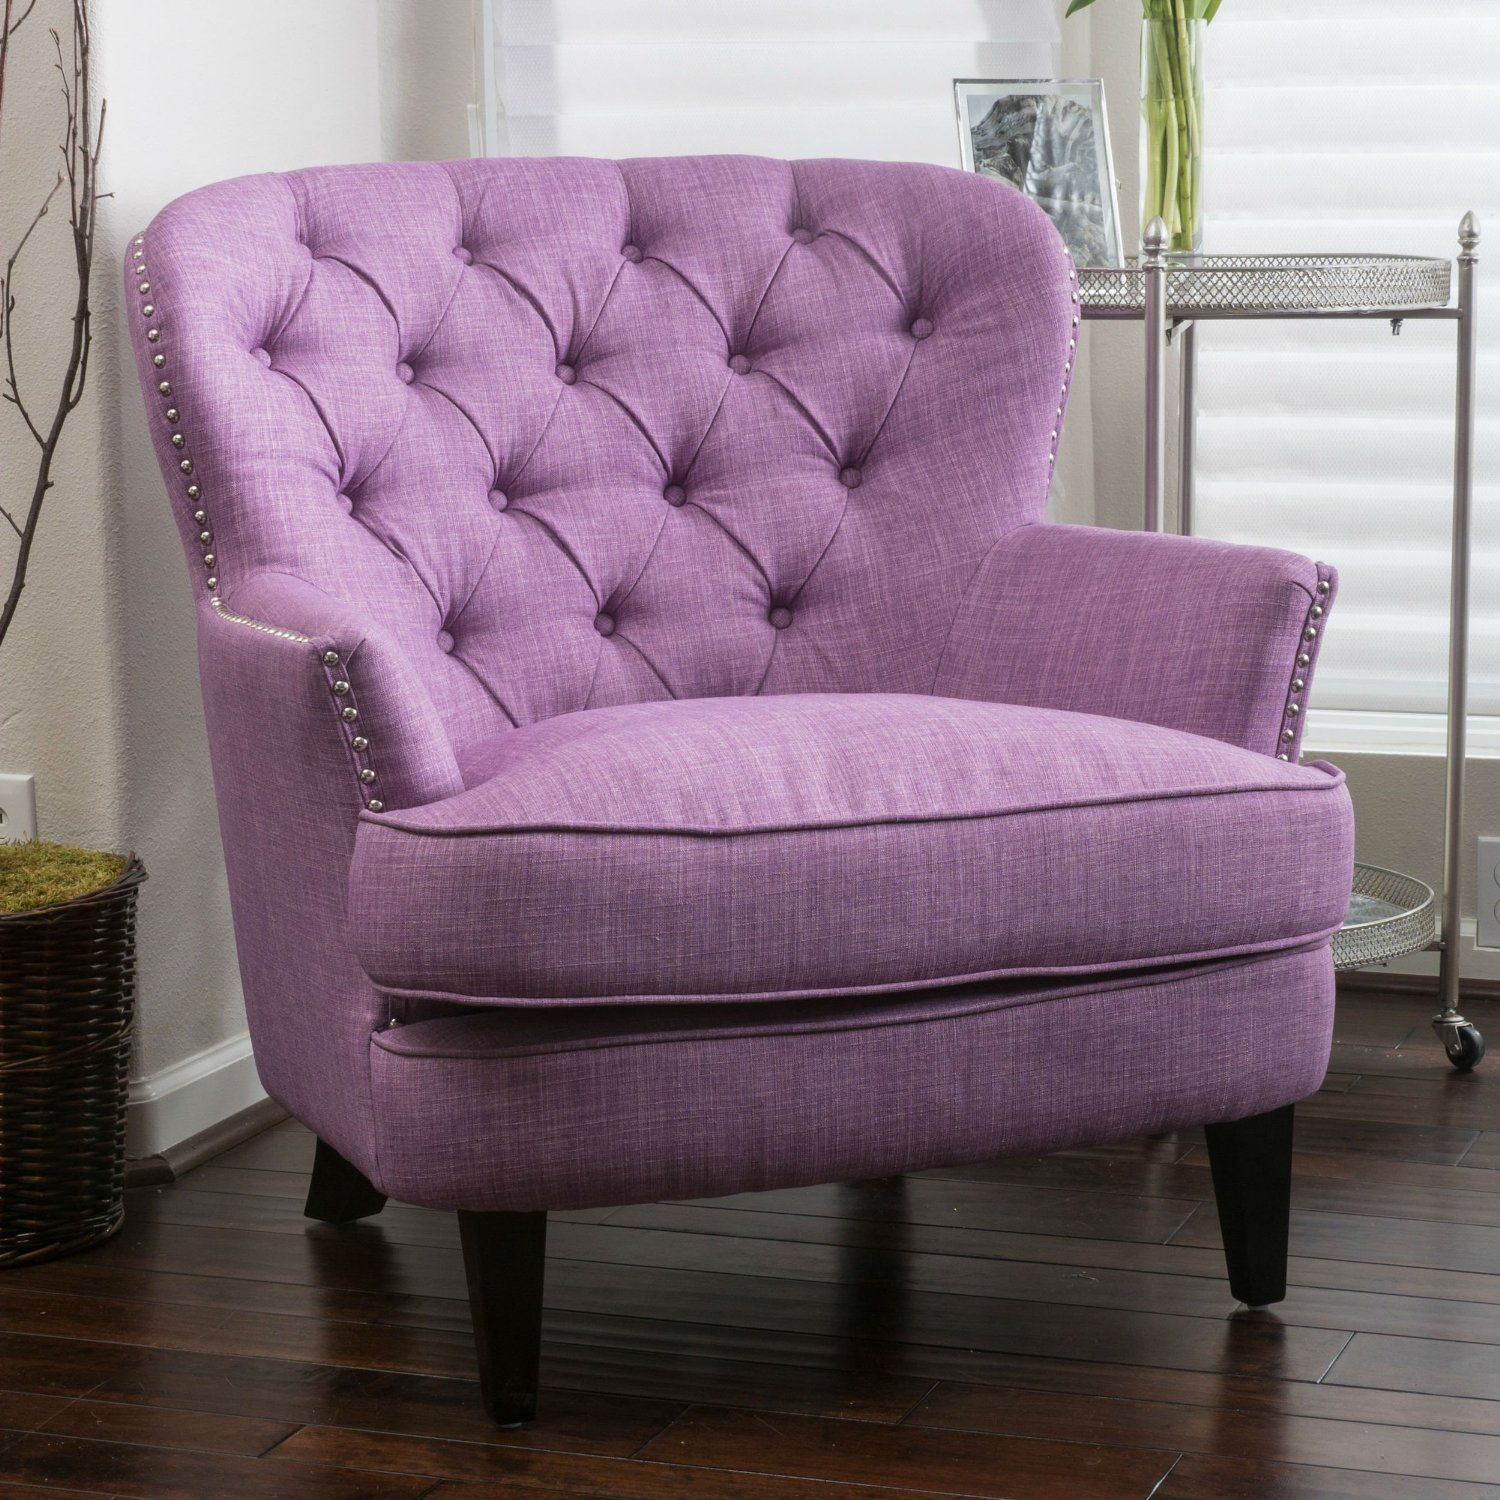 This High Back Club Chair Is A Modern Living Room Must. Features A Purple  Upholstered